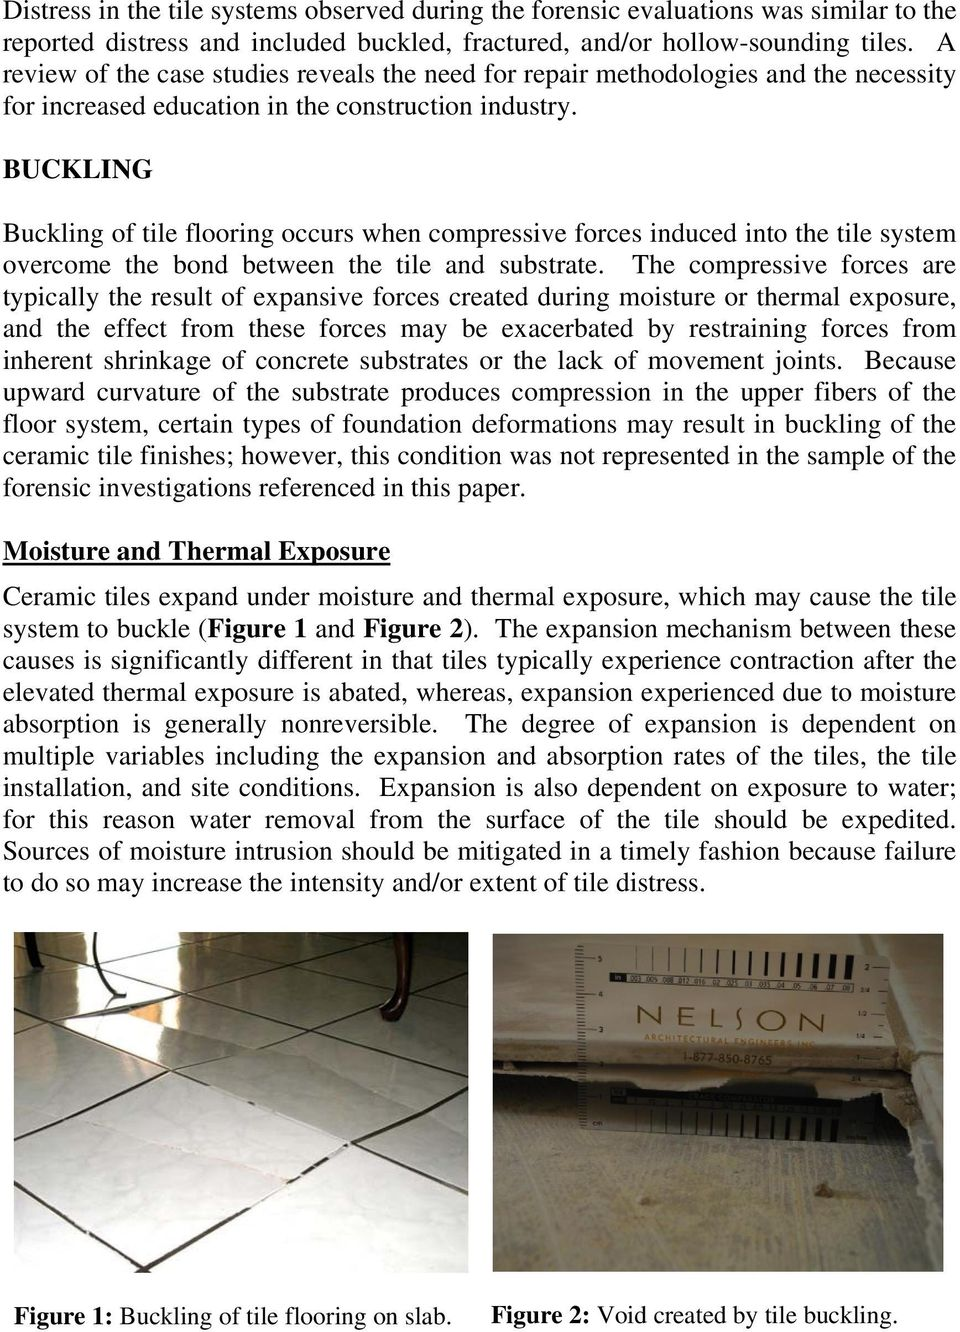 BUCKLING Buckling of tile flooring occurs when compressive forces induced into the tile system overcome the bond between the tile and substrate.